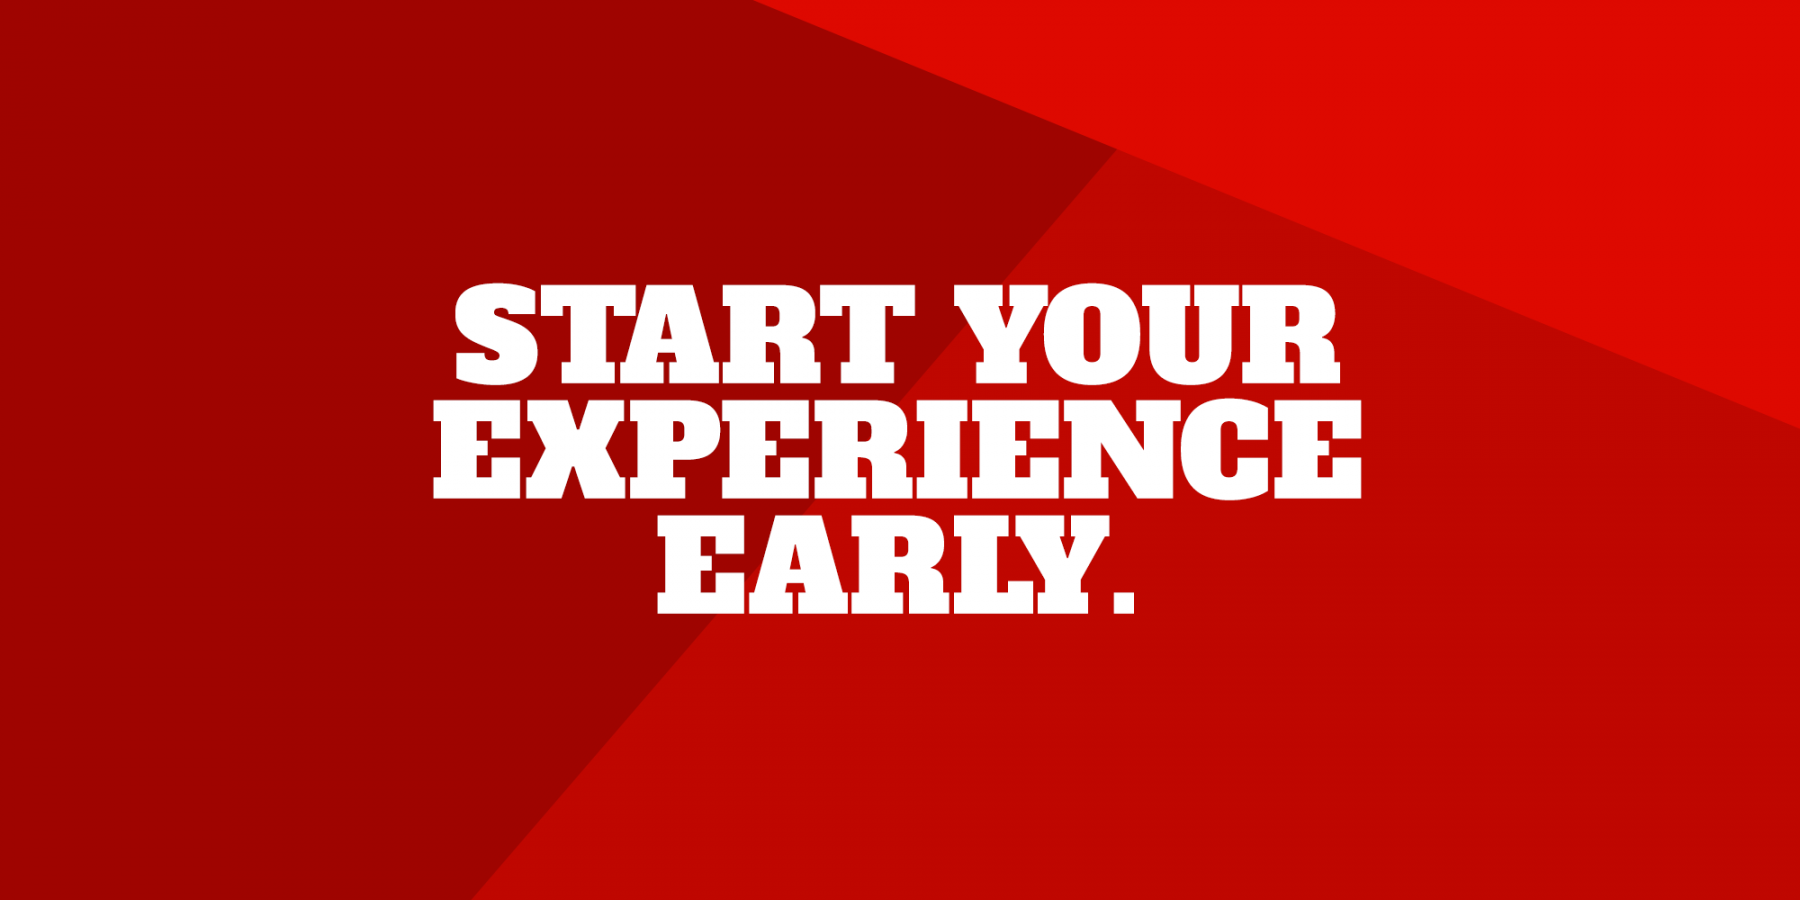 Start your experience early.